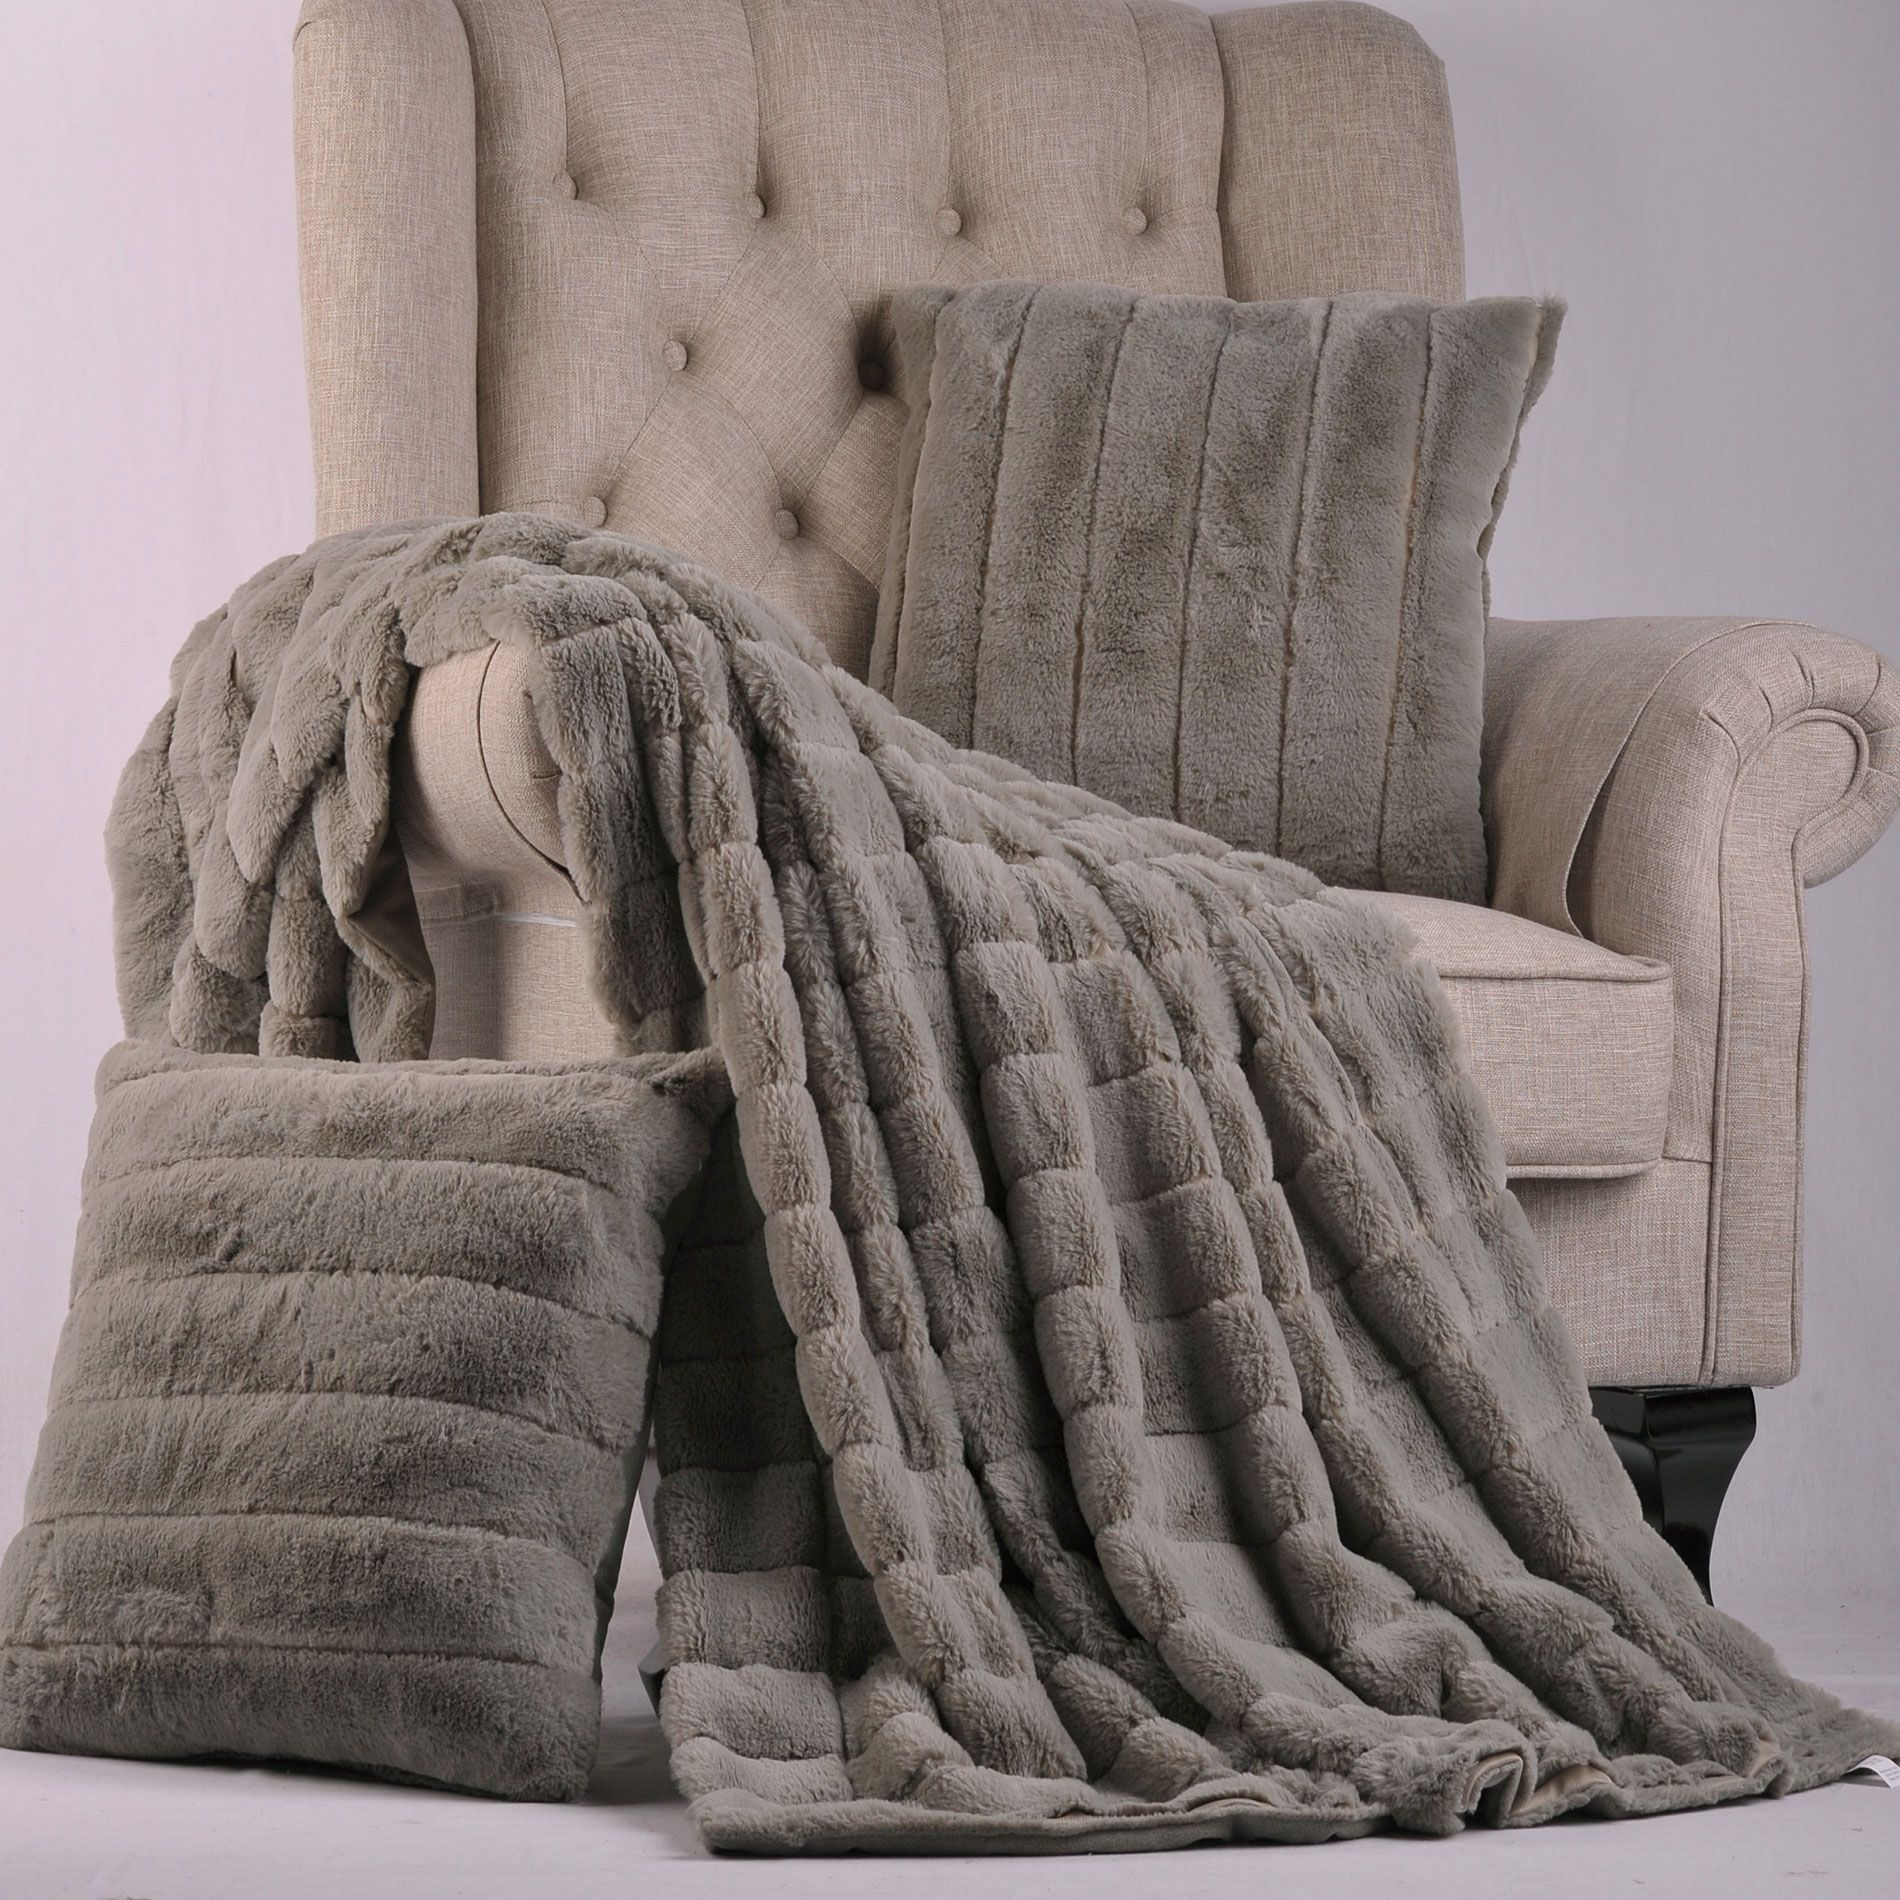 Silver Rabbit Faux Fur Throw Blanket And Pillow Set Combo The Combination Is A Complete Layout For Any Home